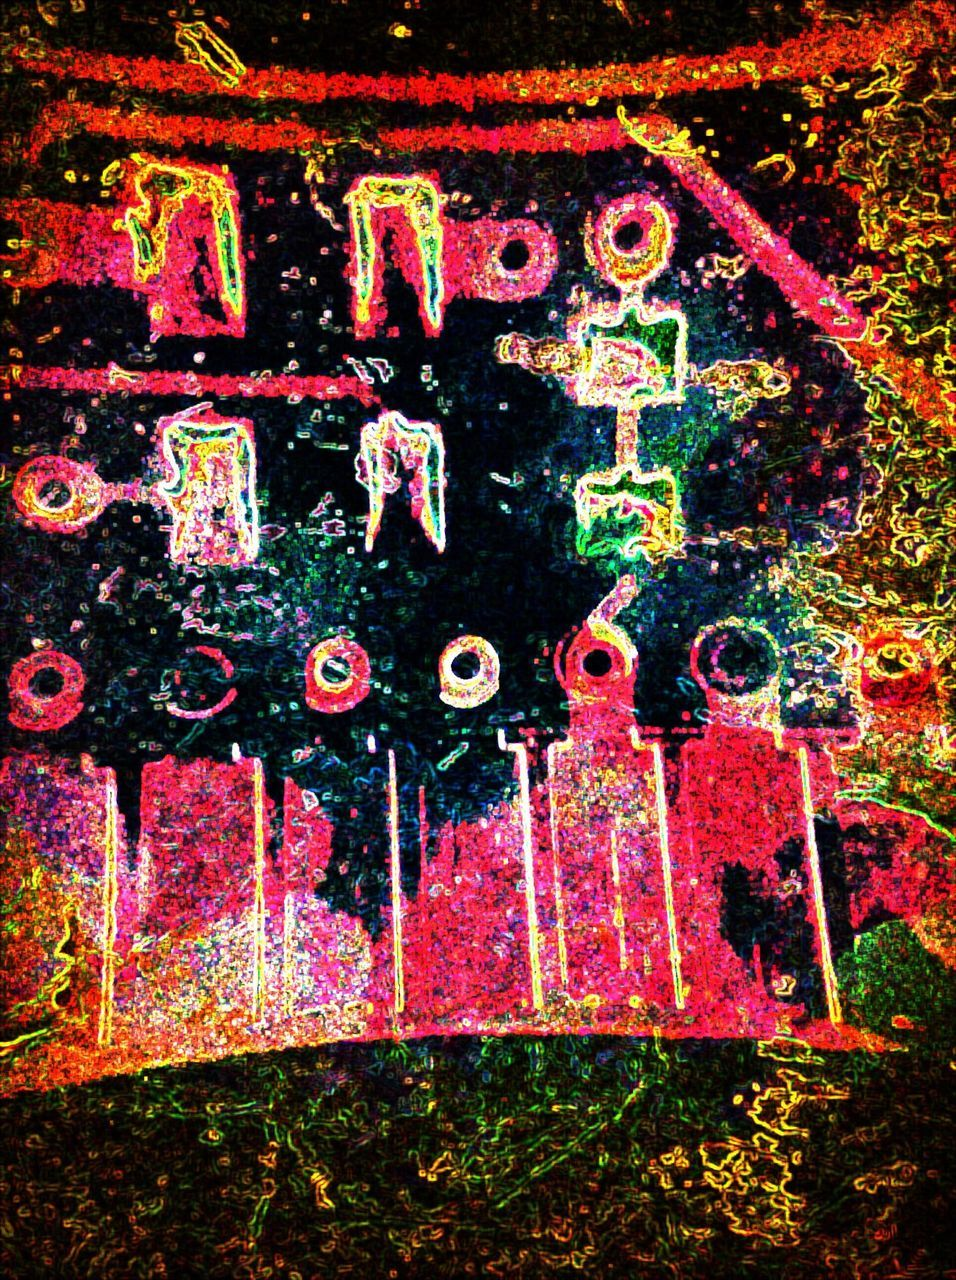 spray paint, graffiti, multi colored, no people, outdoors, day, close-up